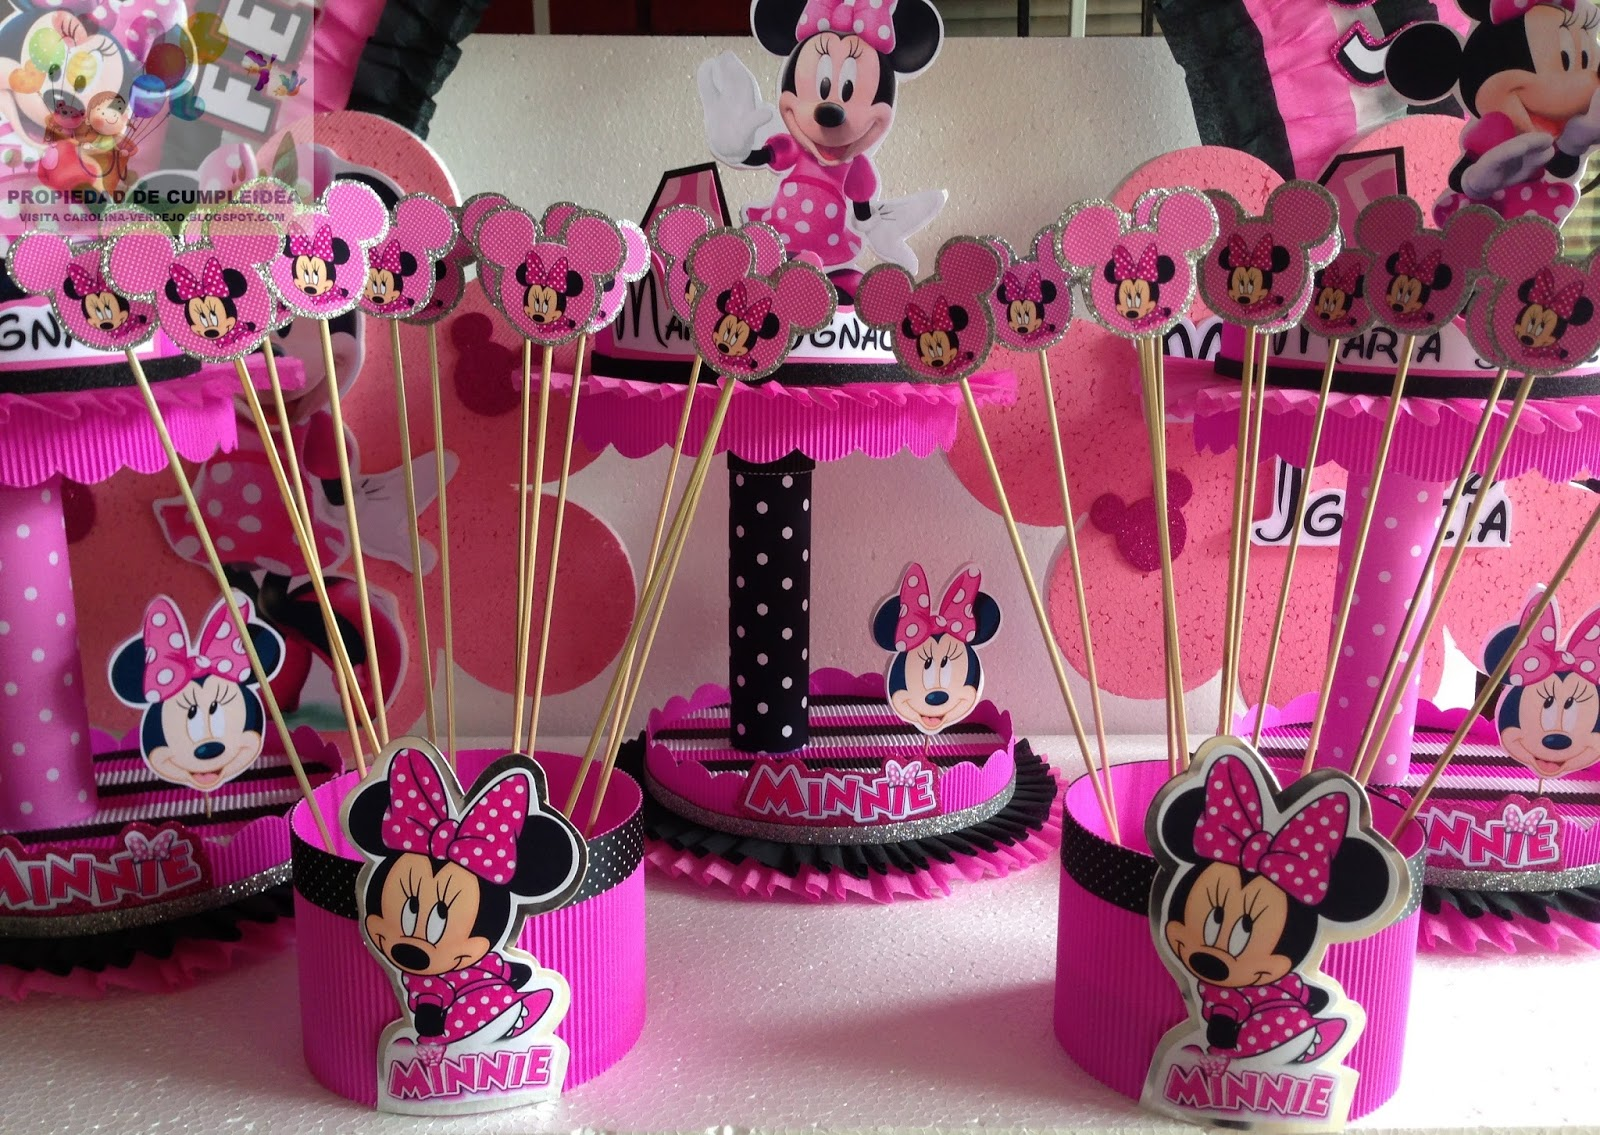 Decoraciones infantiles minnie mouse - Decoracion cumpleanos bebe ...